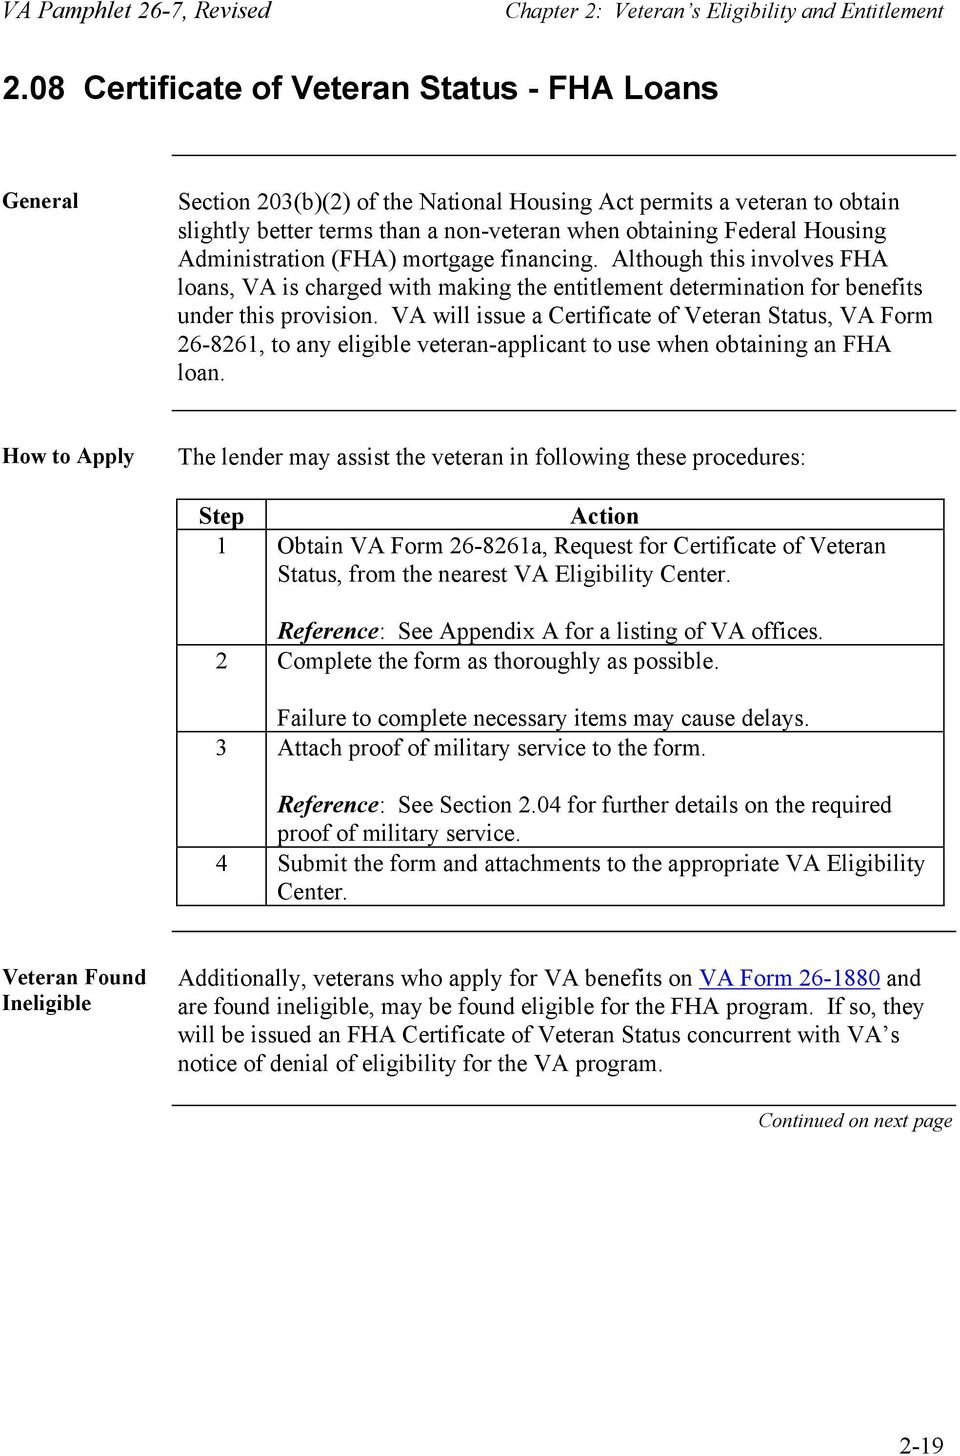 Chapter 2 Veterans Eligibility And Entitlement Overview Pdf